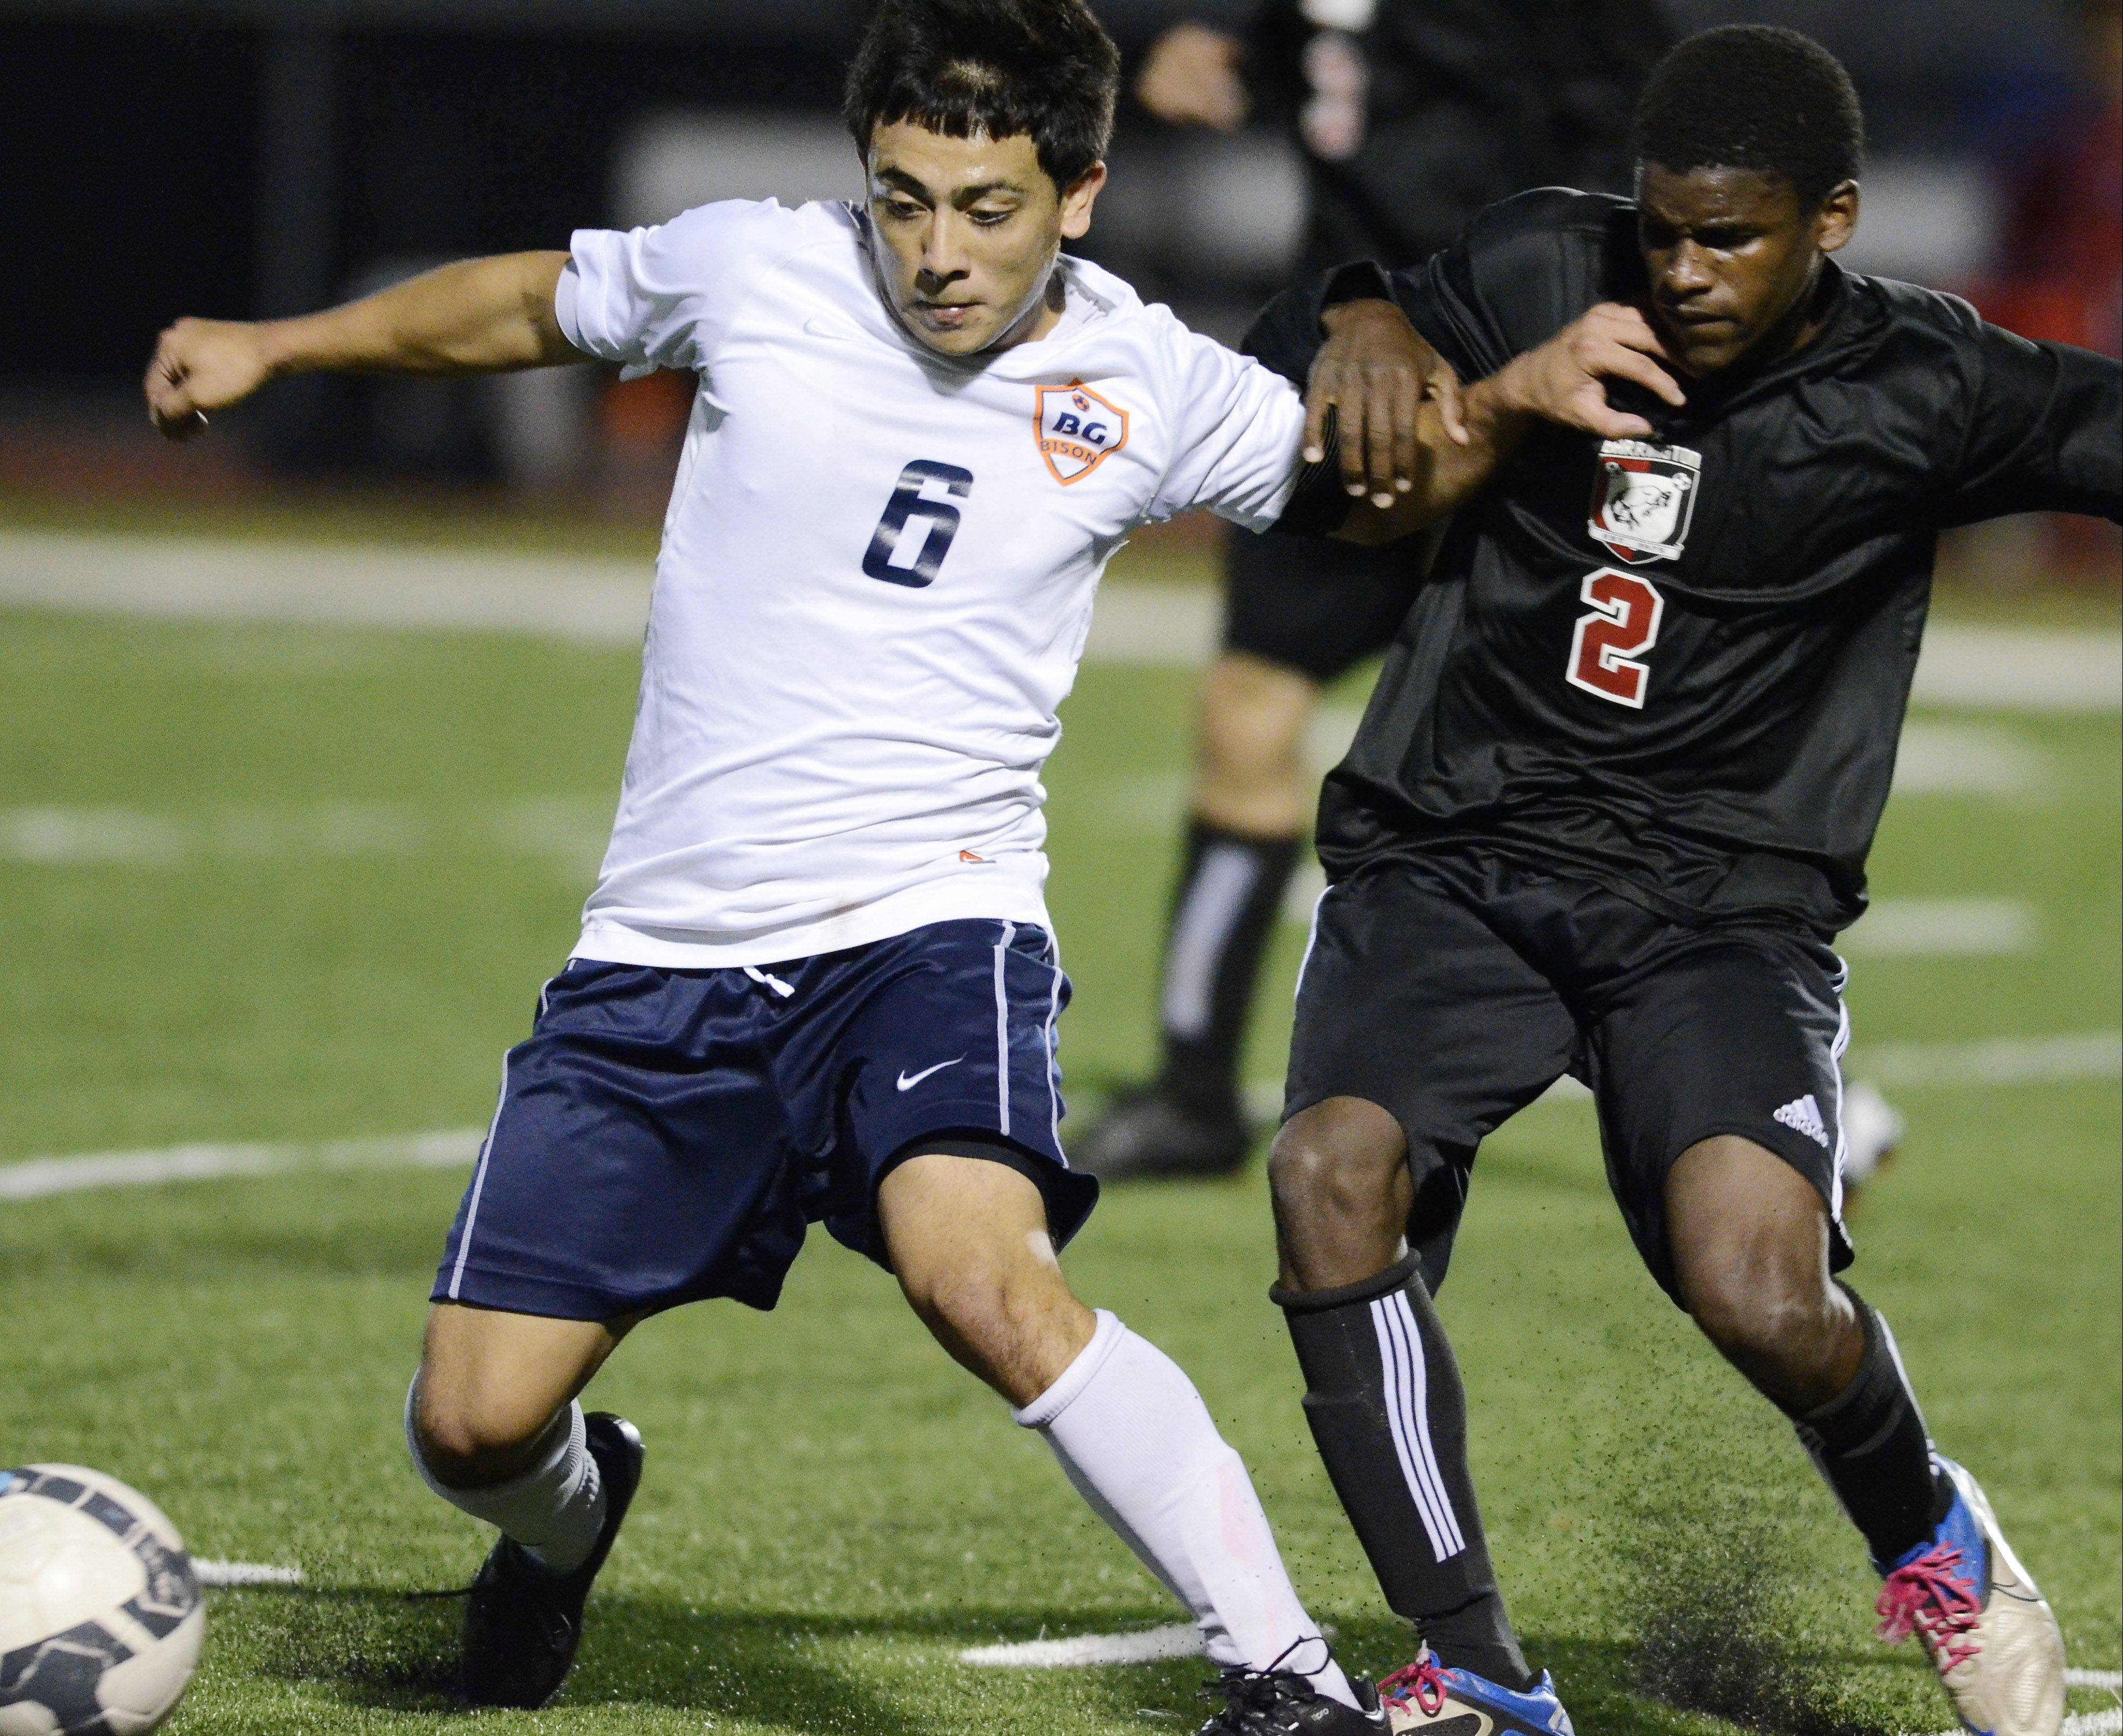 Buffalo Grove's Irving Eloiza, left, and Barrington all-area forward Kendall Stork make contact as they pursue the ball in an MSL contes